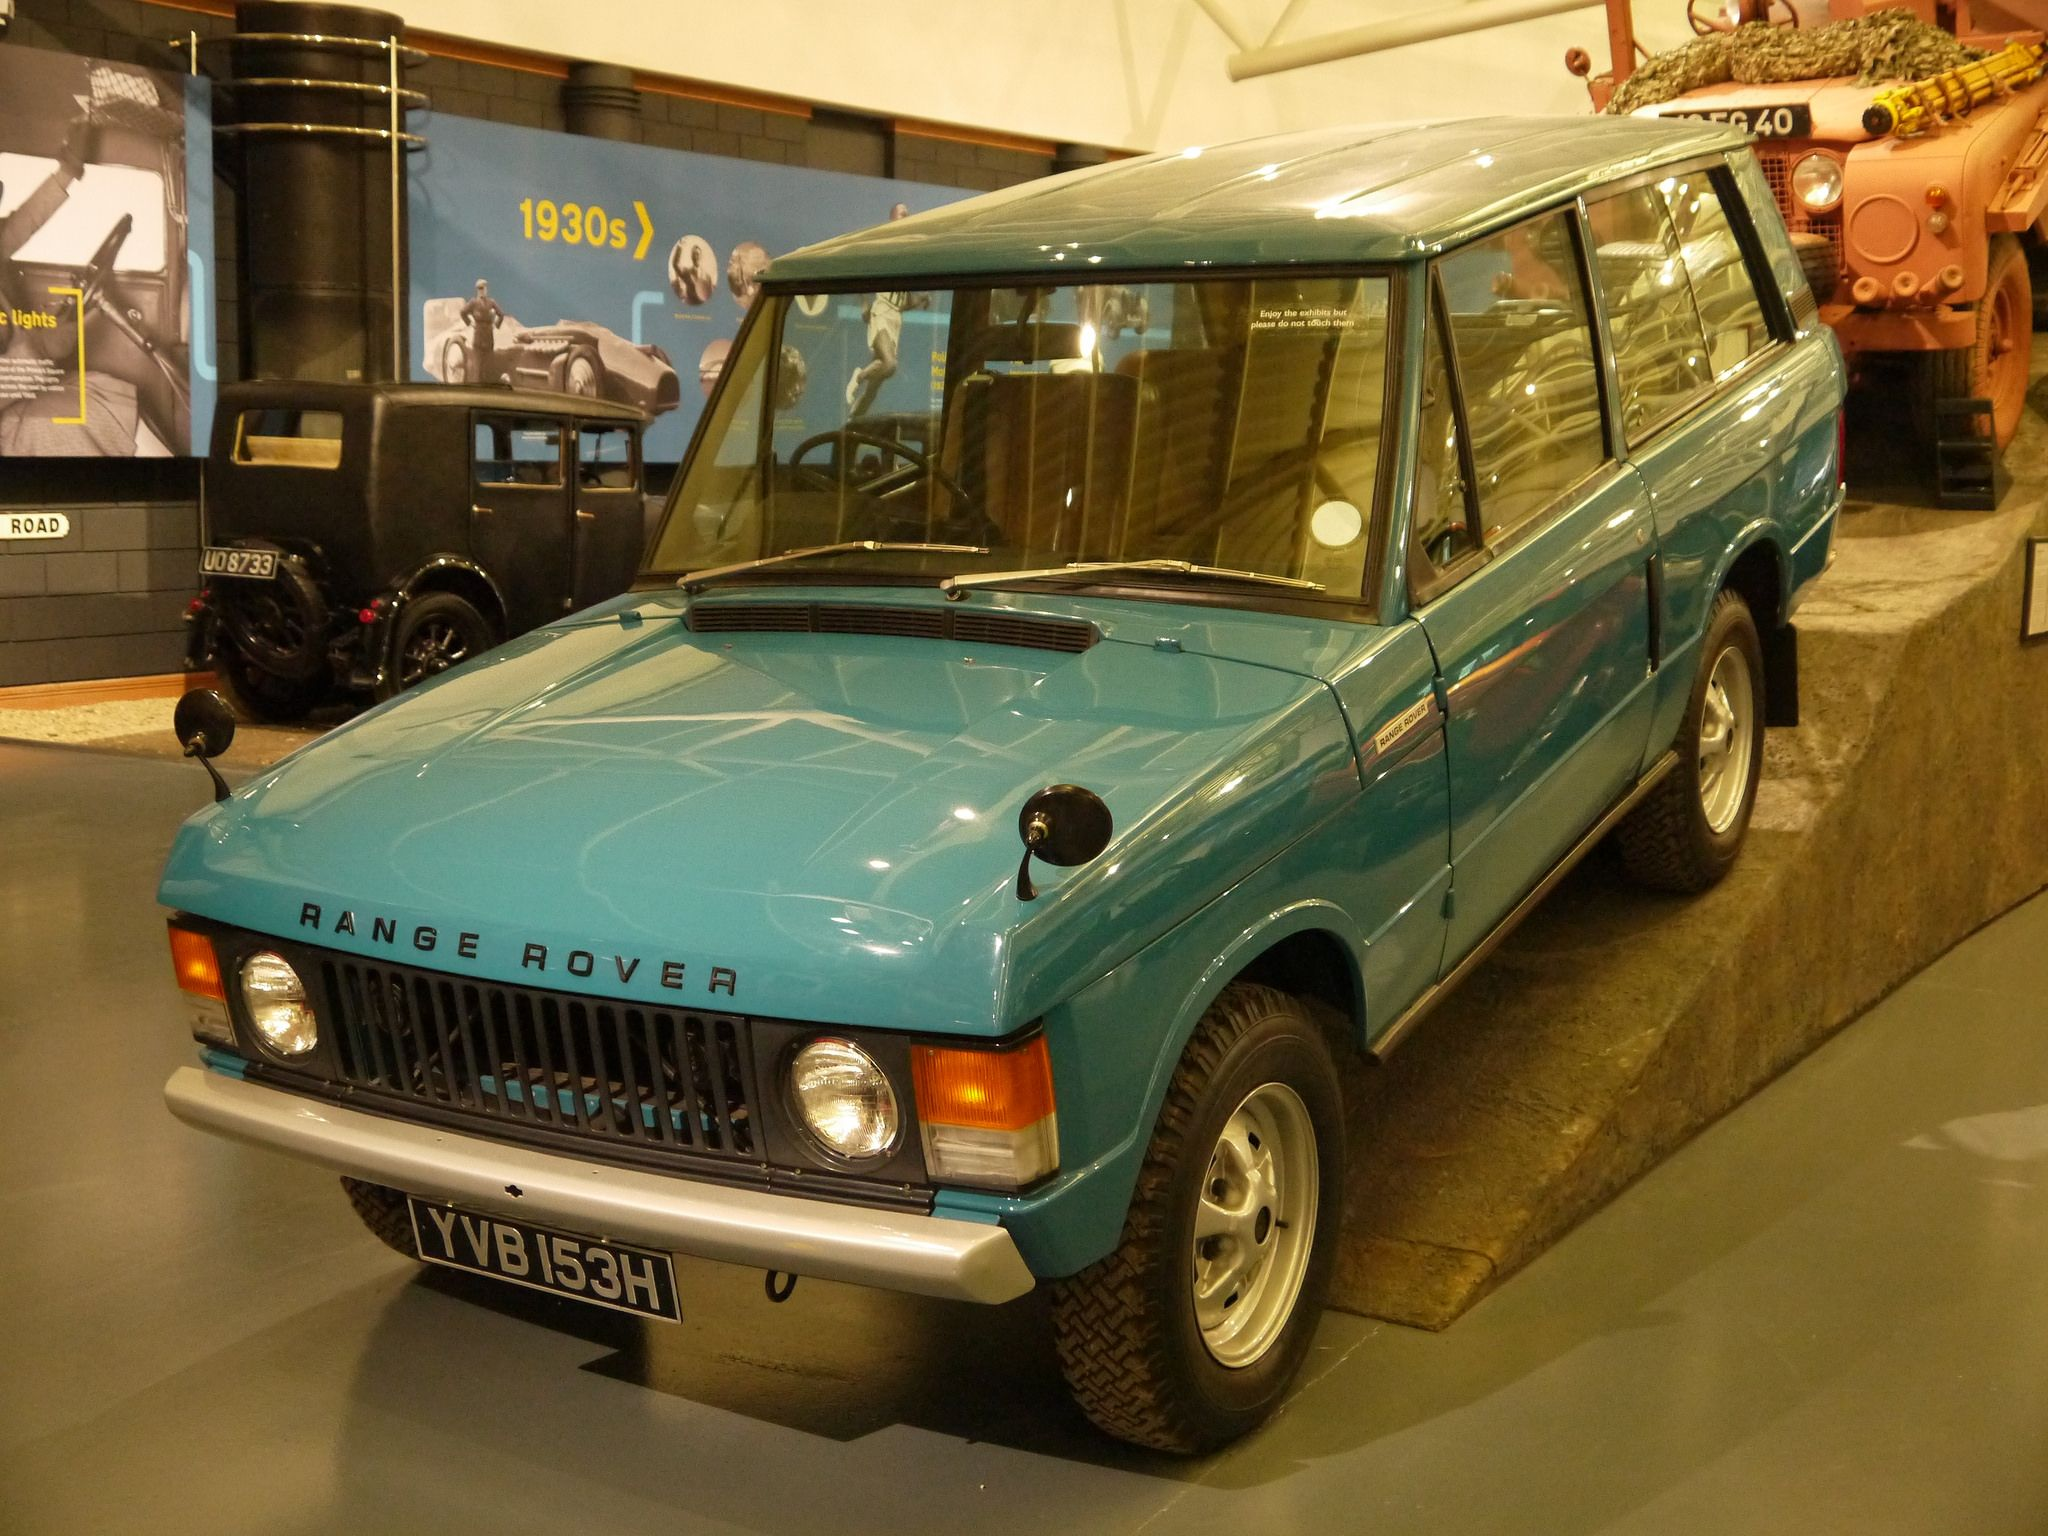 1969 Range Rover by The Transport Guild on DeviantArt